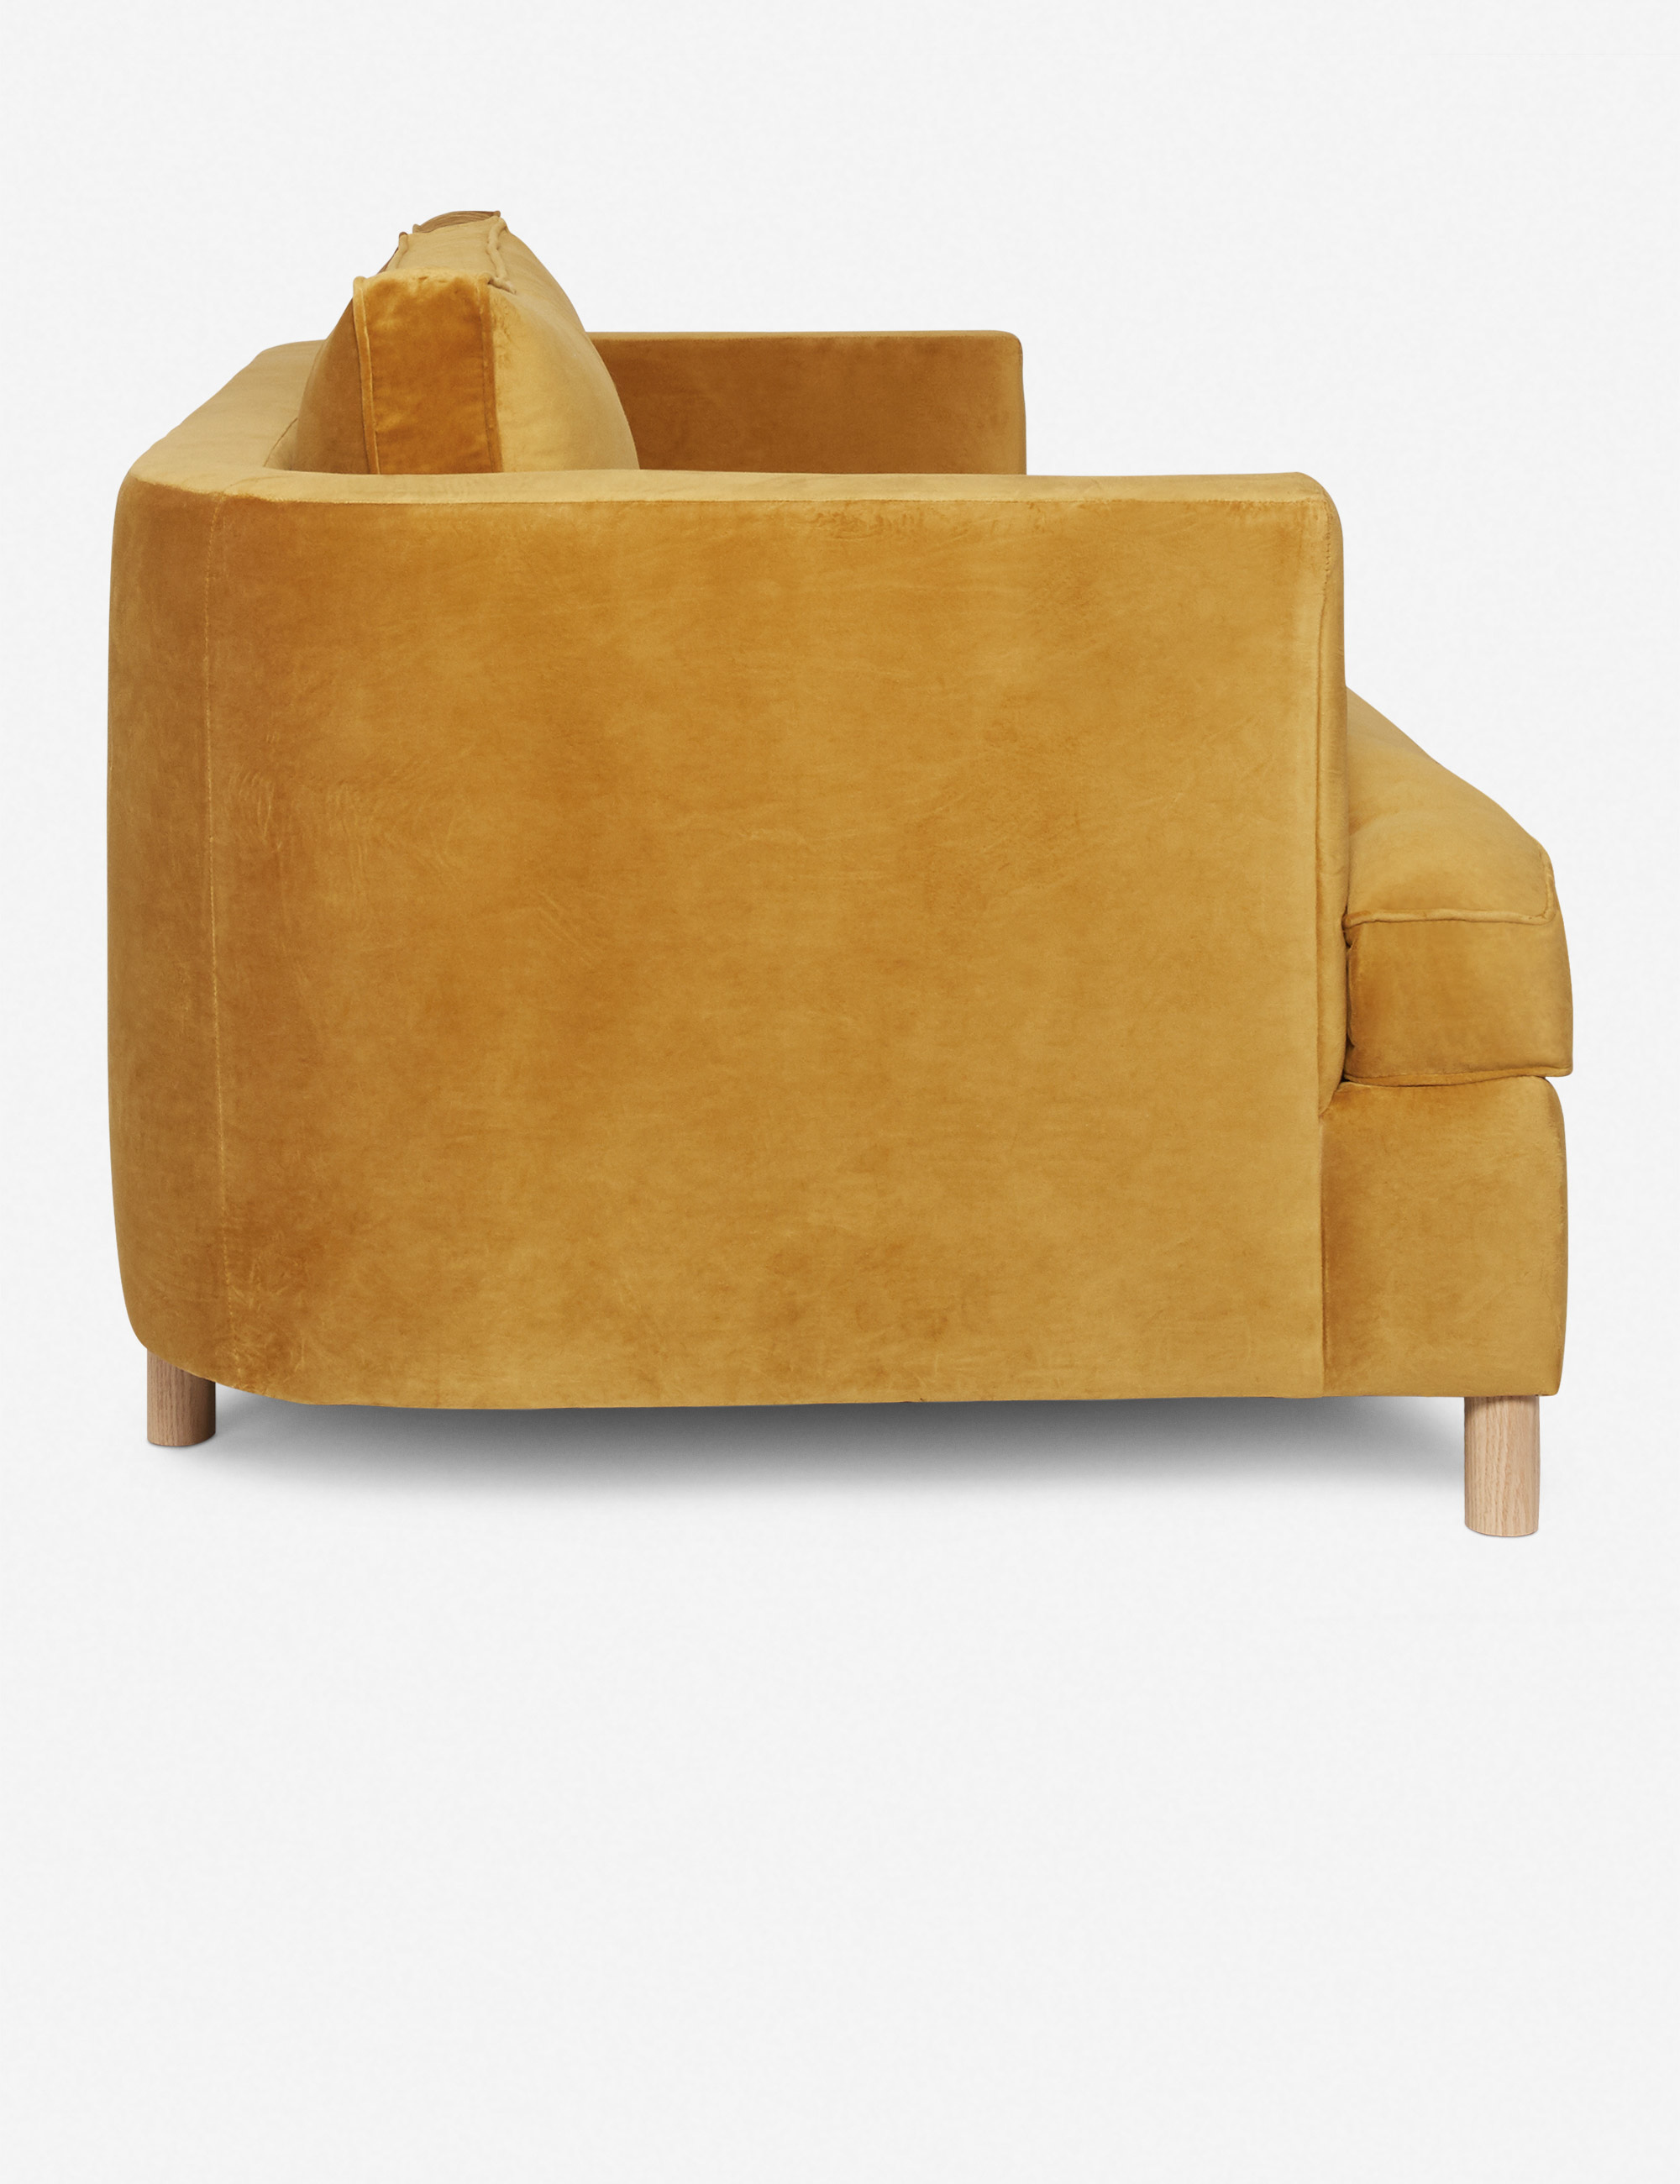 GINNY_MACDONALD_BELMONT-SOFA-golden-rod-4